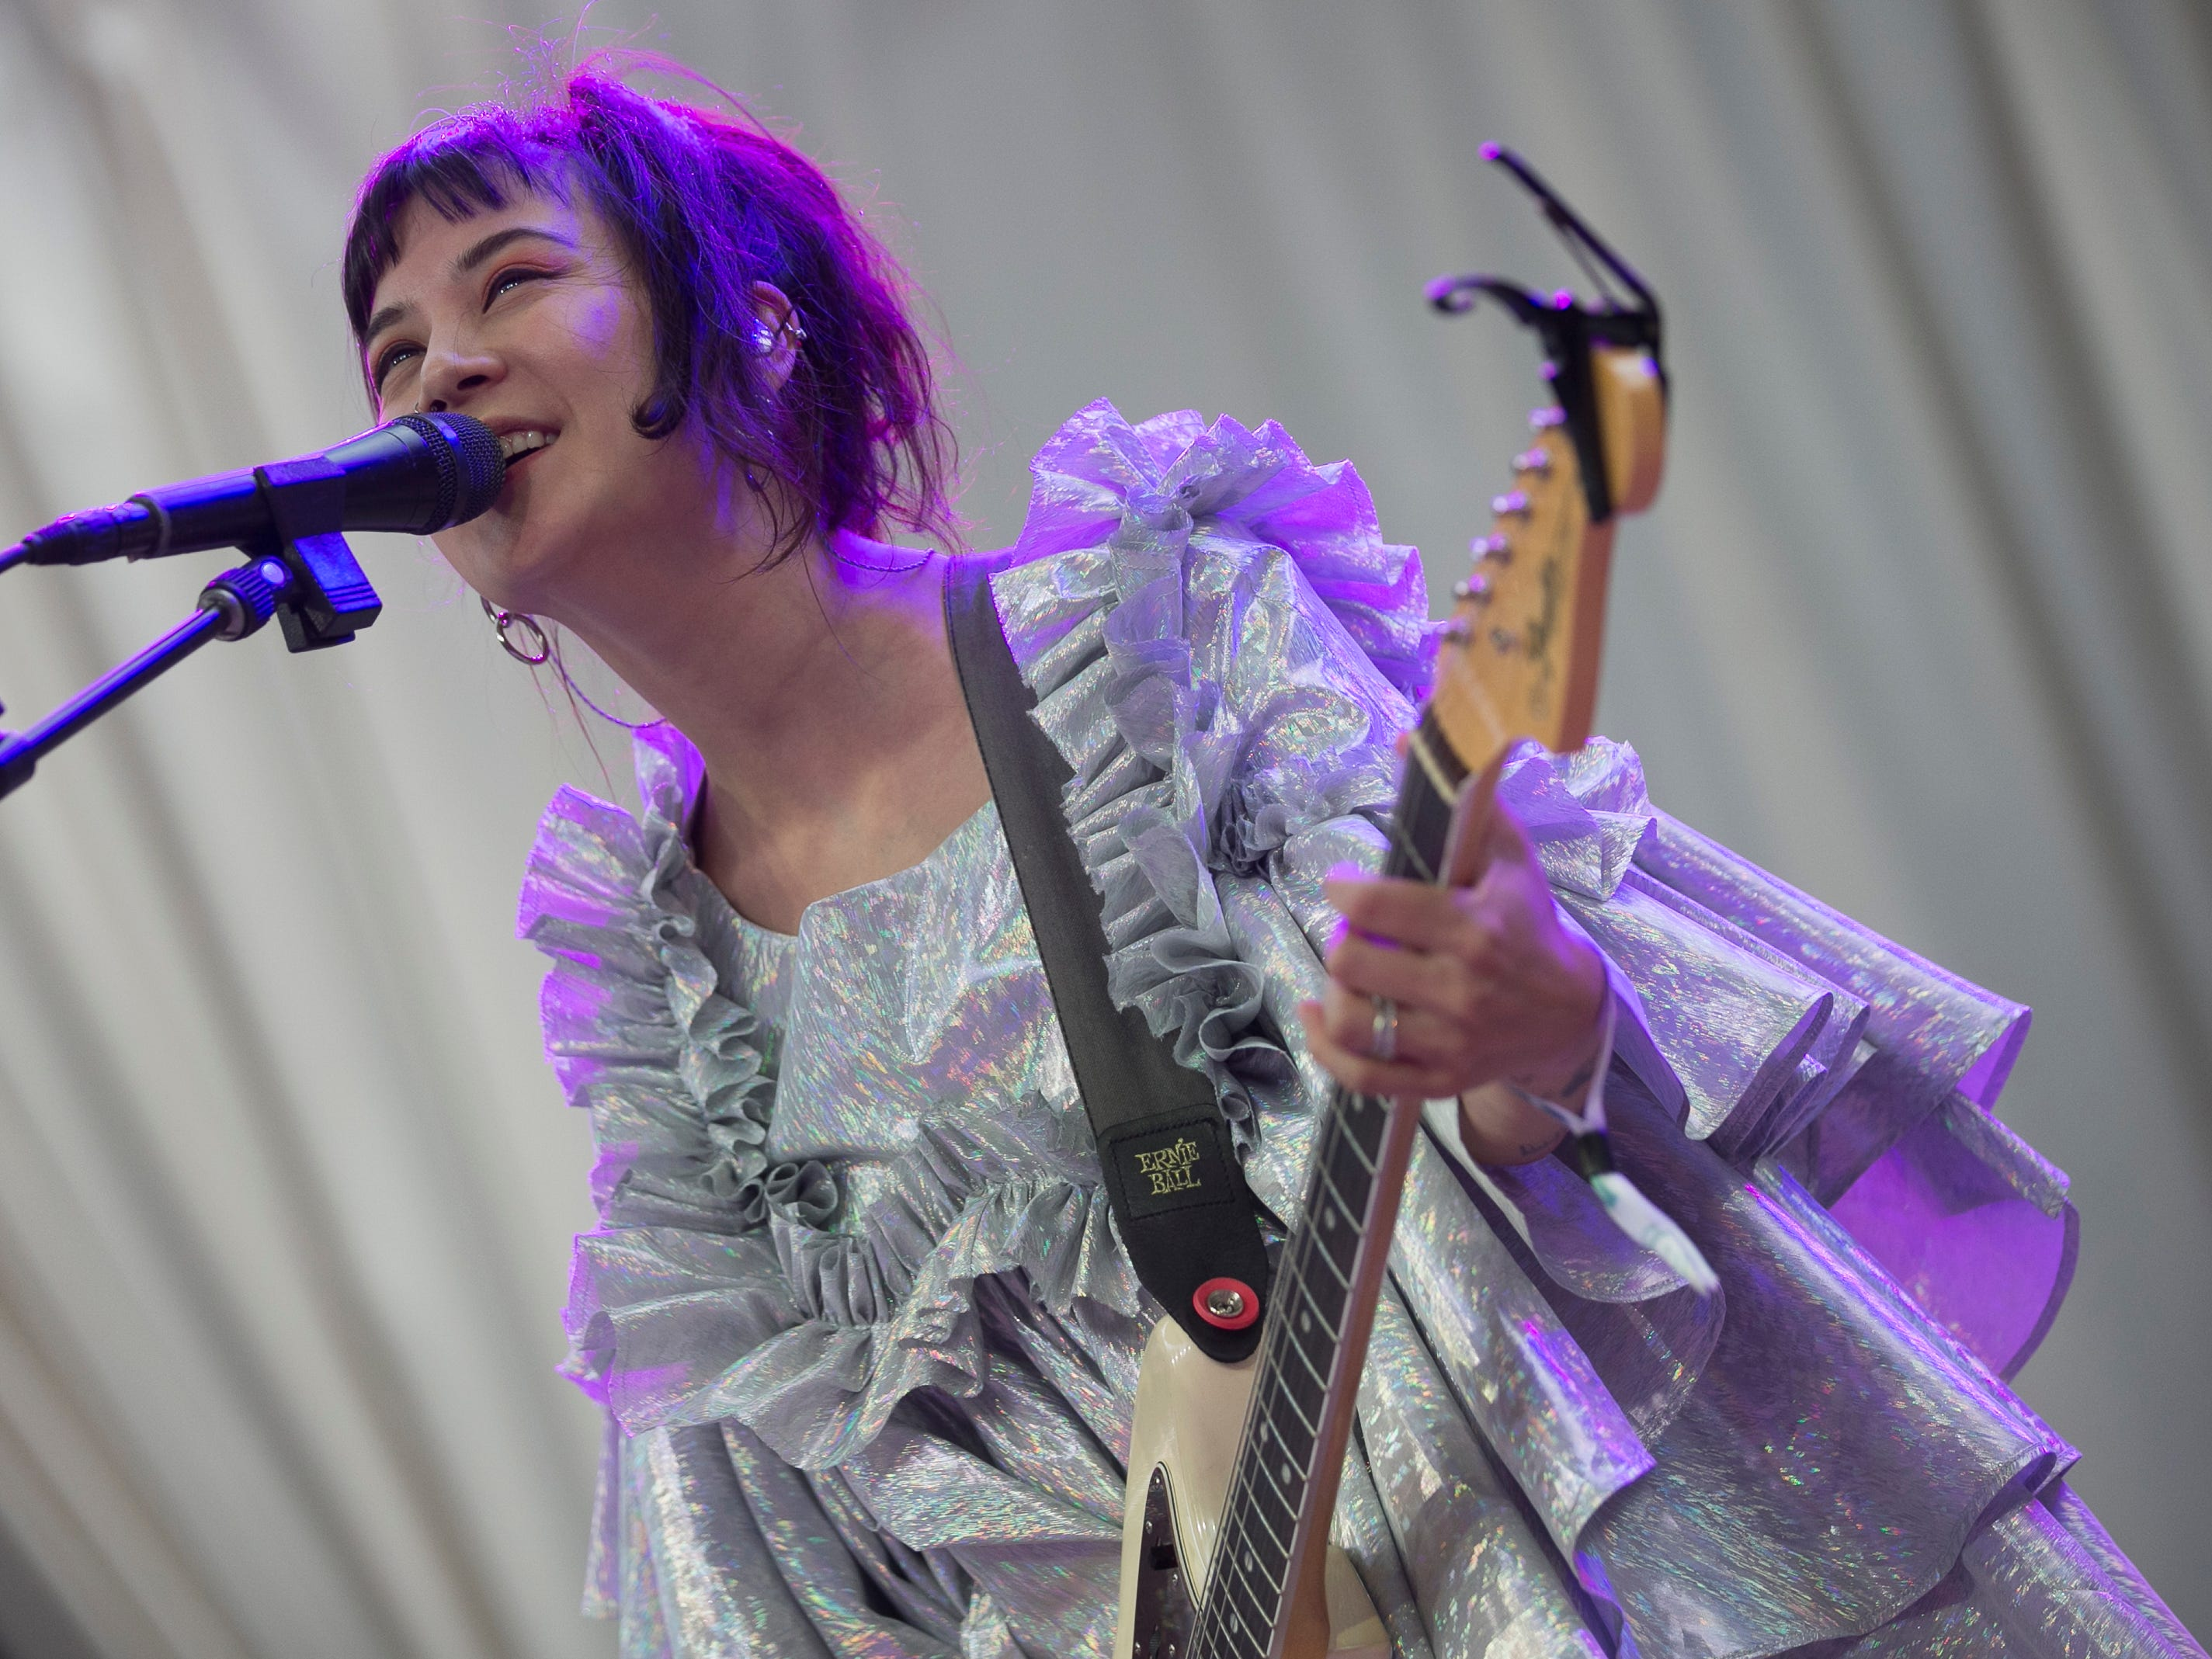 Japanese Breakfast performs at the 2019 FORM Arcosanti music festival near Camp Verde, Arizona on May 10, 2019.